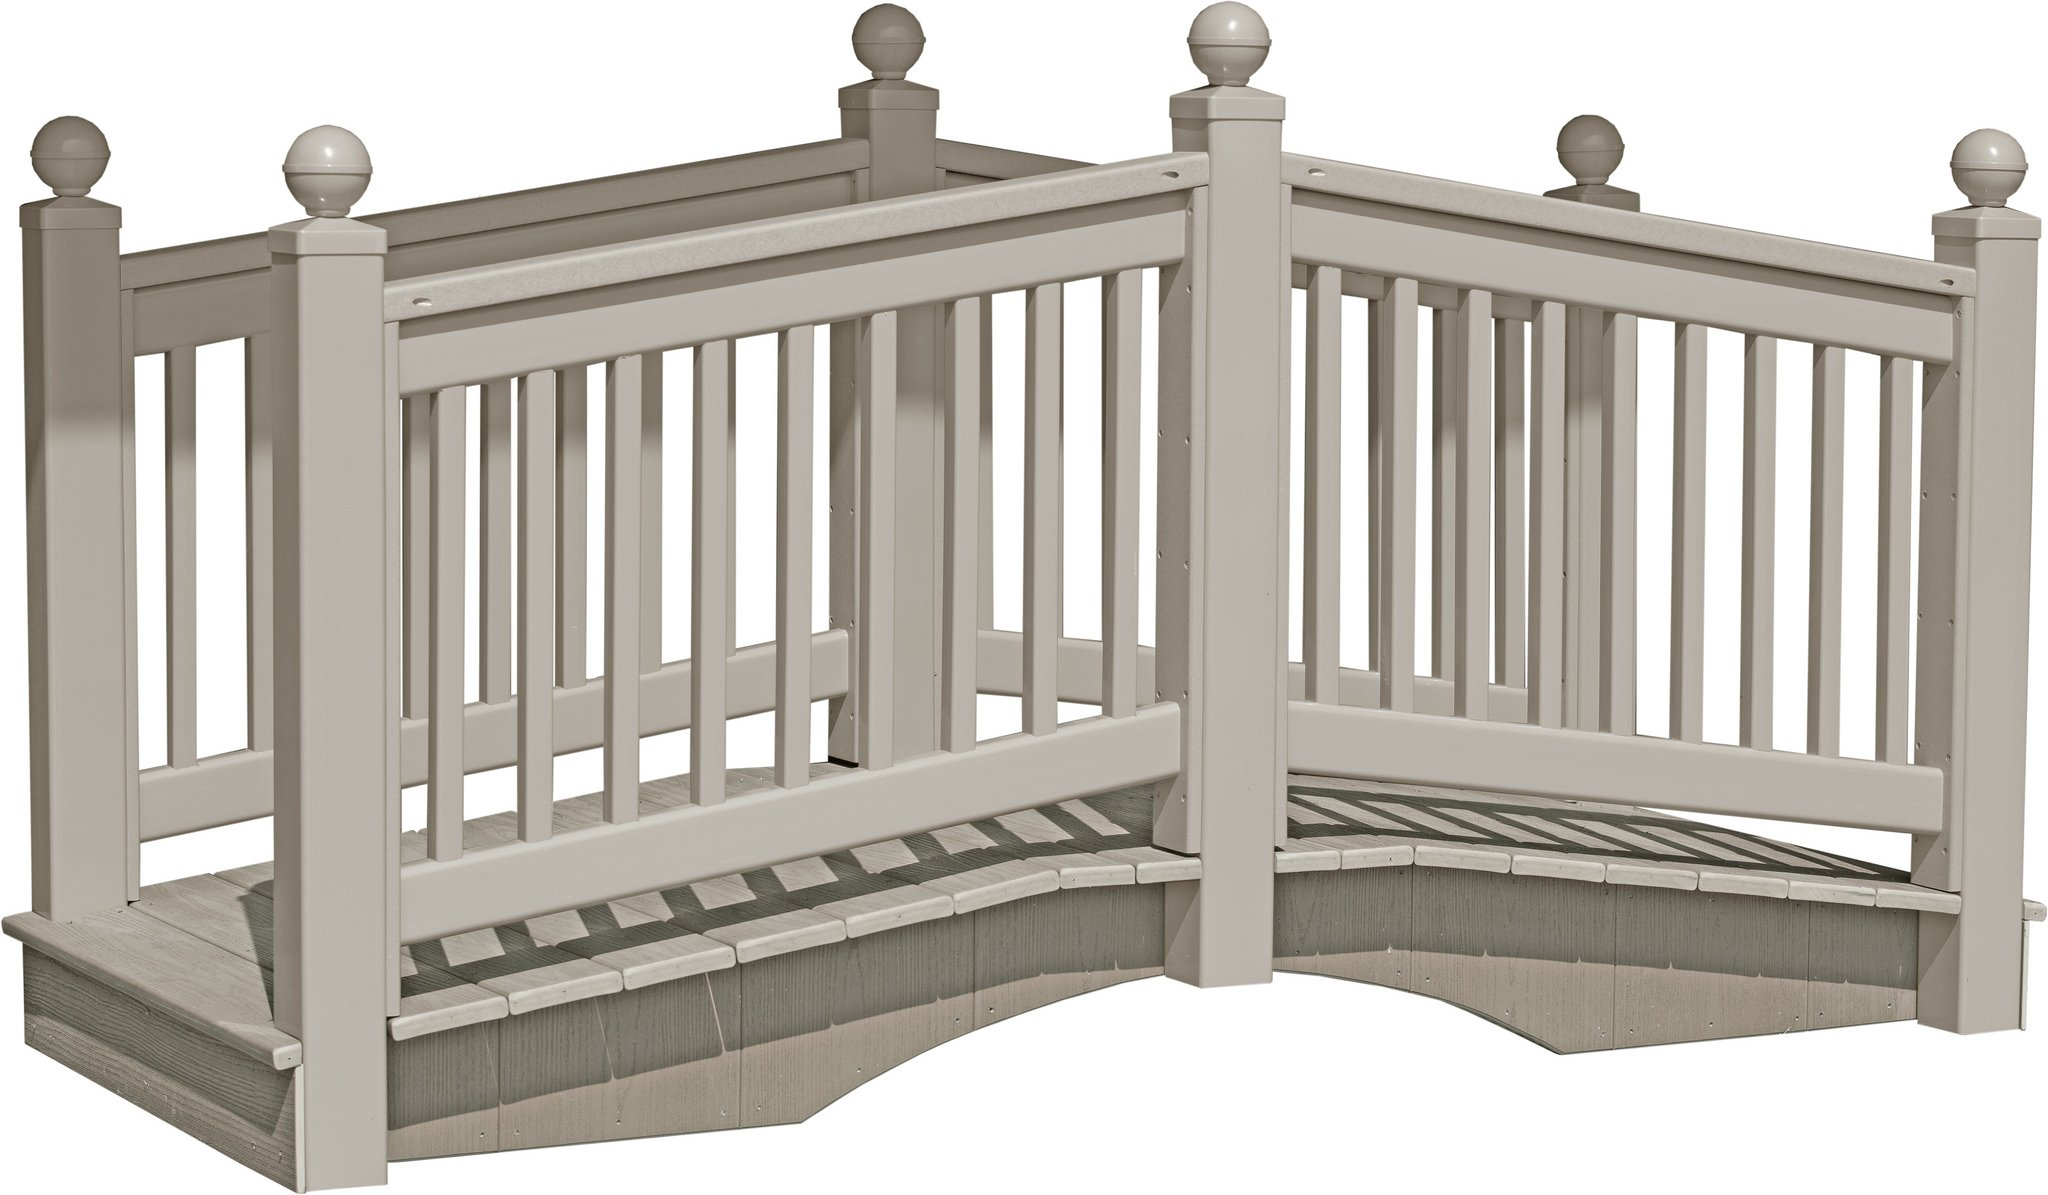 8 Foot Vinyl Outdoor Bridge with Gray Vekadeck Flooring - Clay - Amish Made in USA